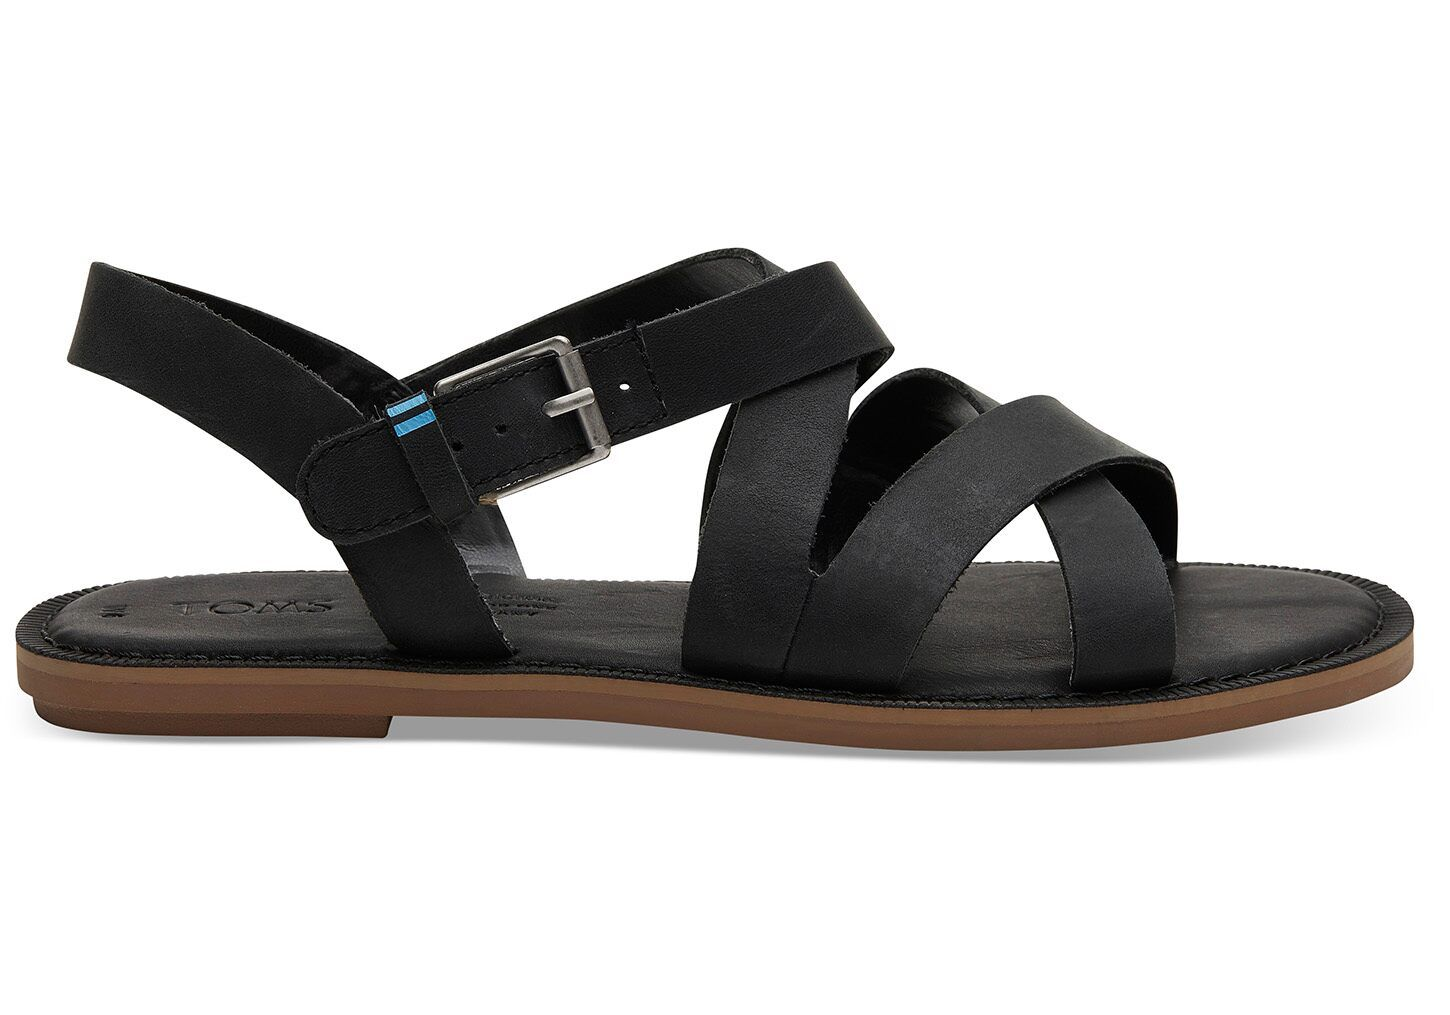 Womens sandals, Leather women